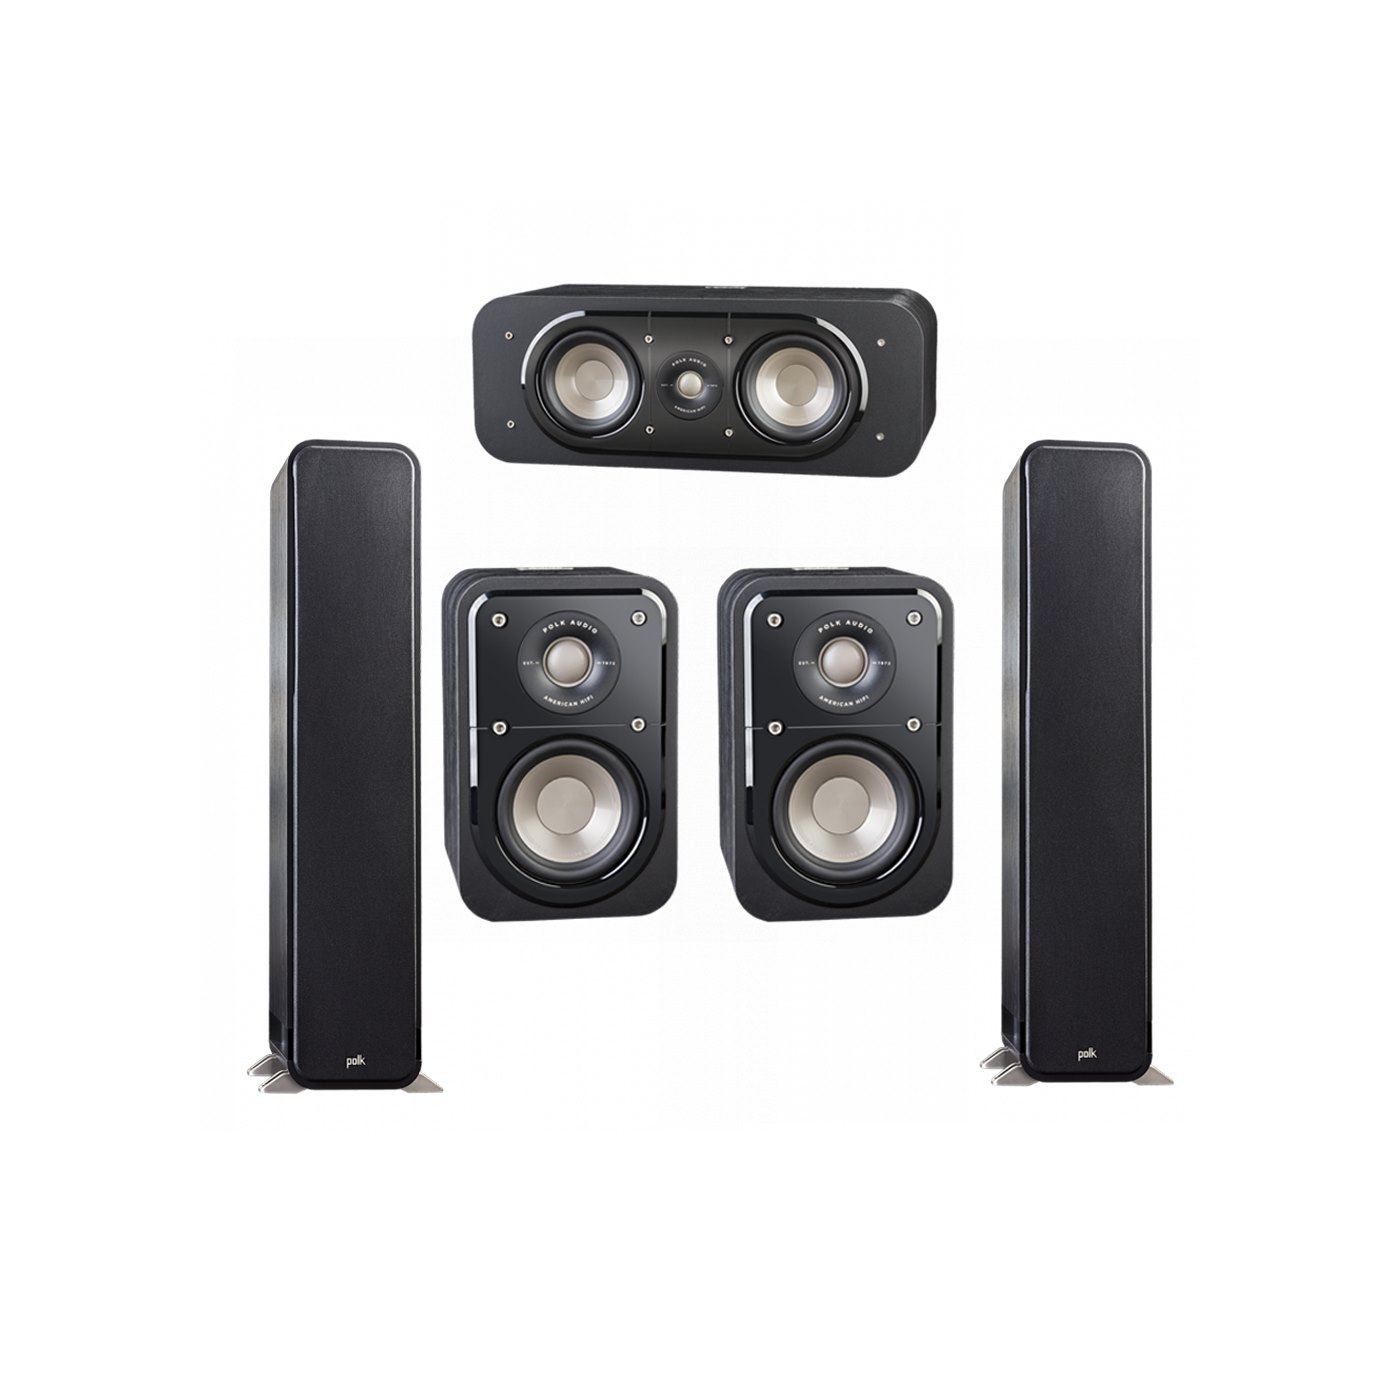 Polk Audio Signature 5.0 System with 2 S55 Tower Speaker, 1 Polk S30 Center Speaker, 2 Polk S10 Surround Speaker